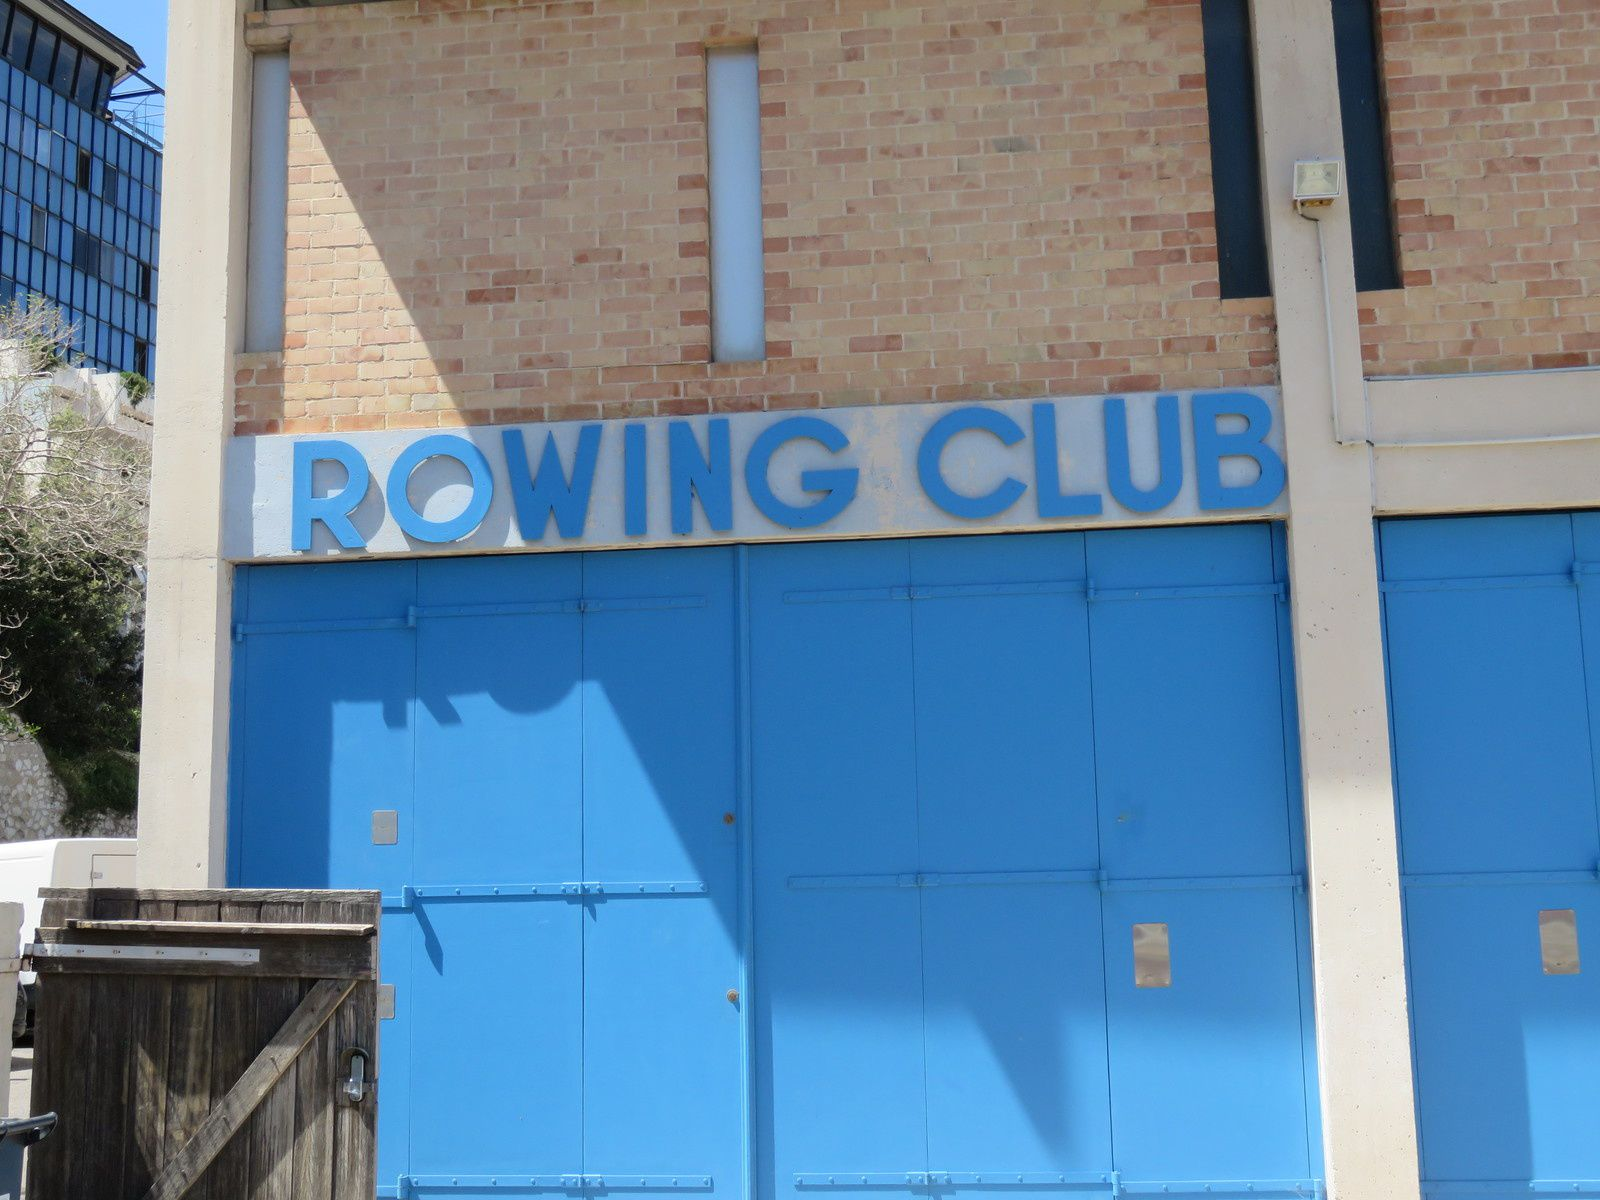 Le Rowing Club - 13007